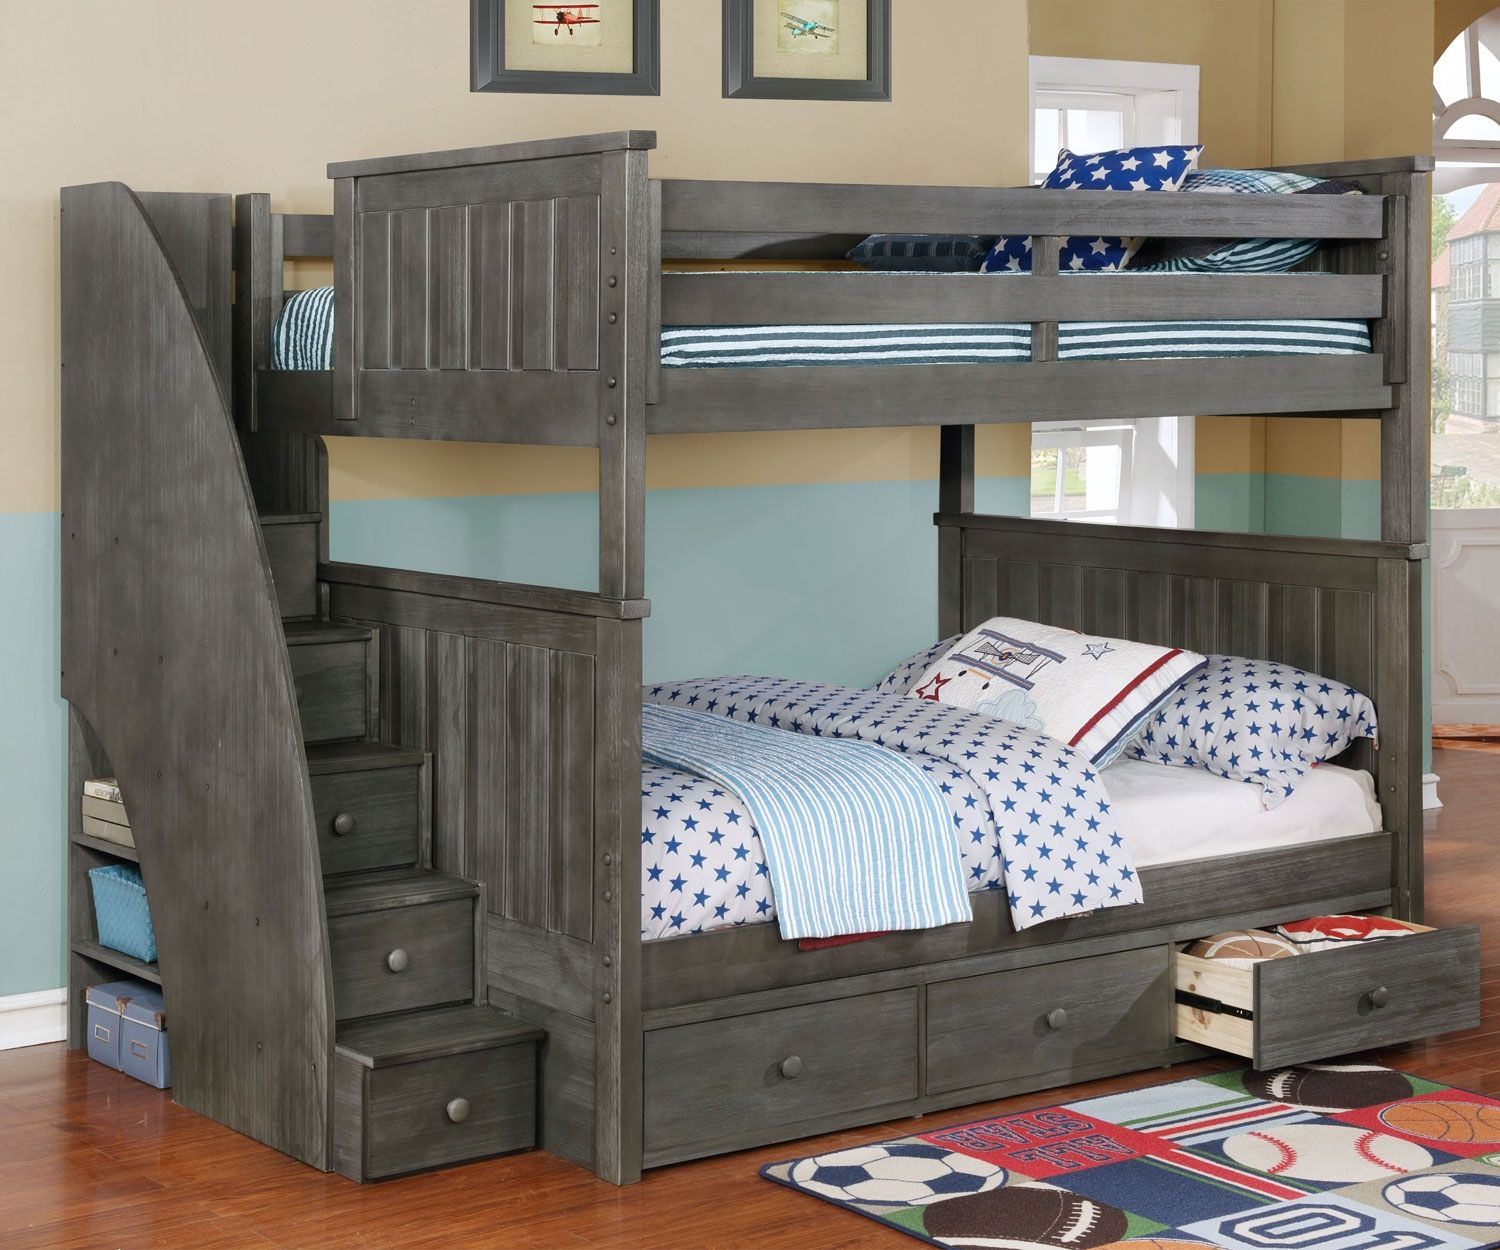 Full Bunk Bed with Stairs Best Interior House Paint